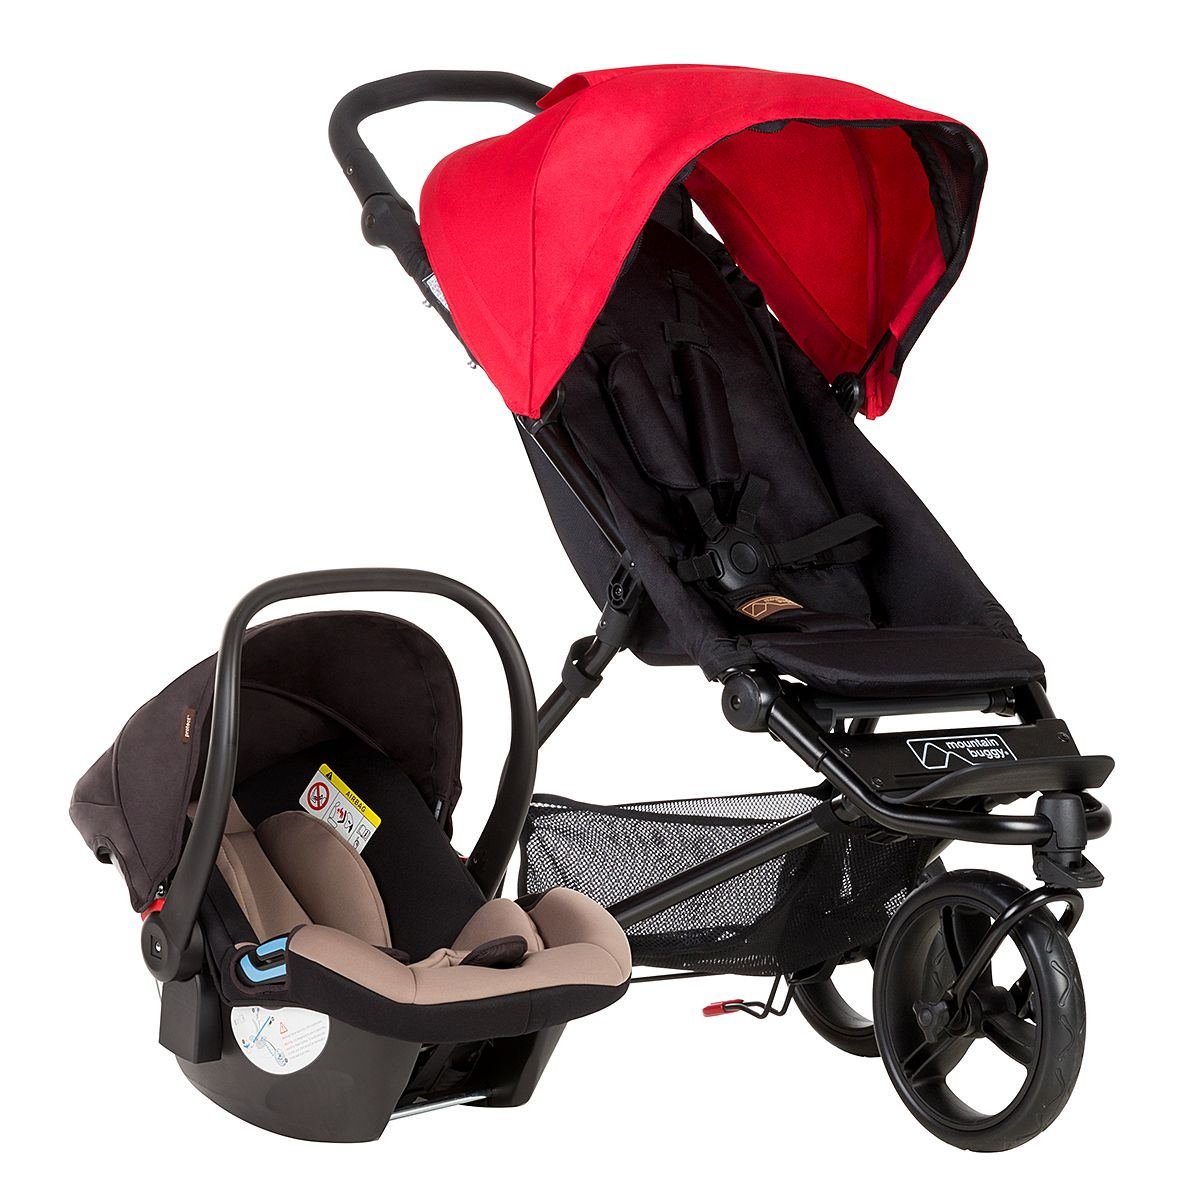 This Travel System Deliver More Capabilities For You and